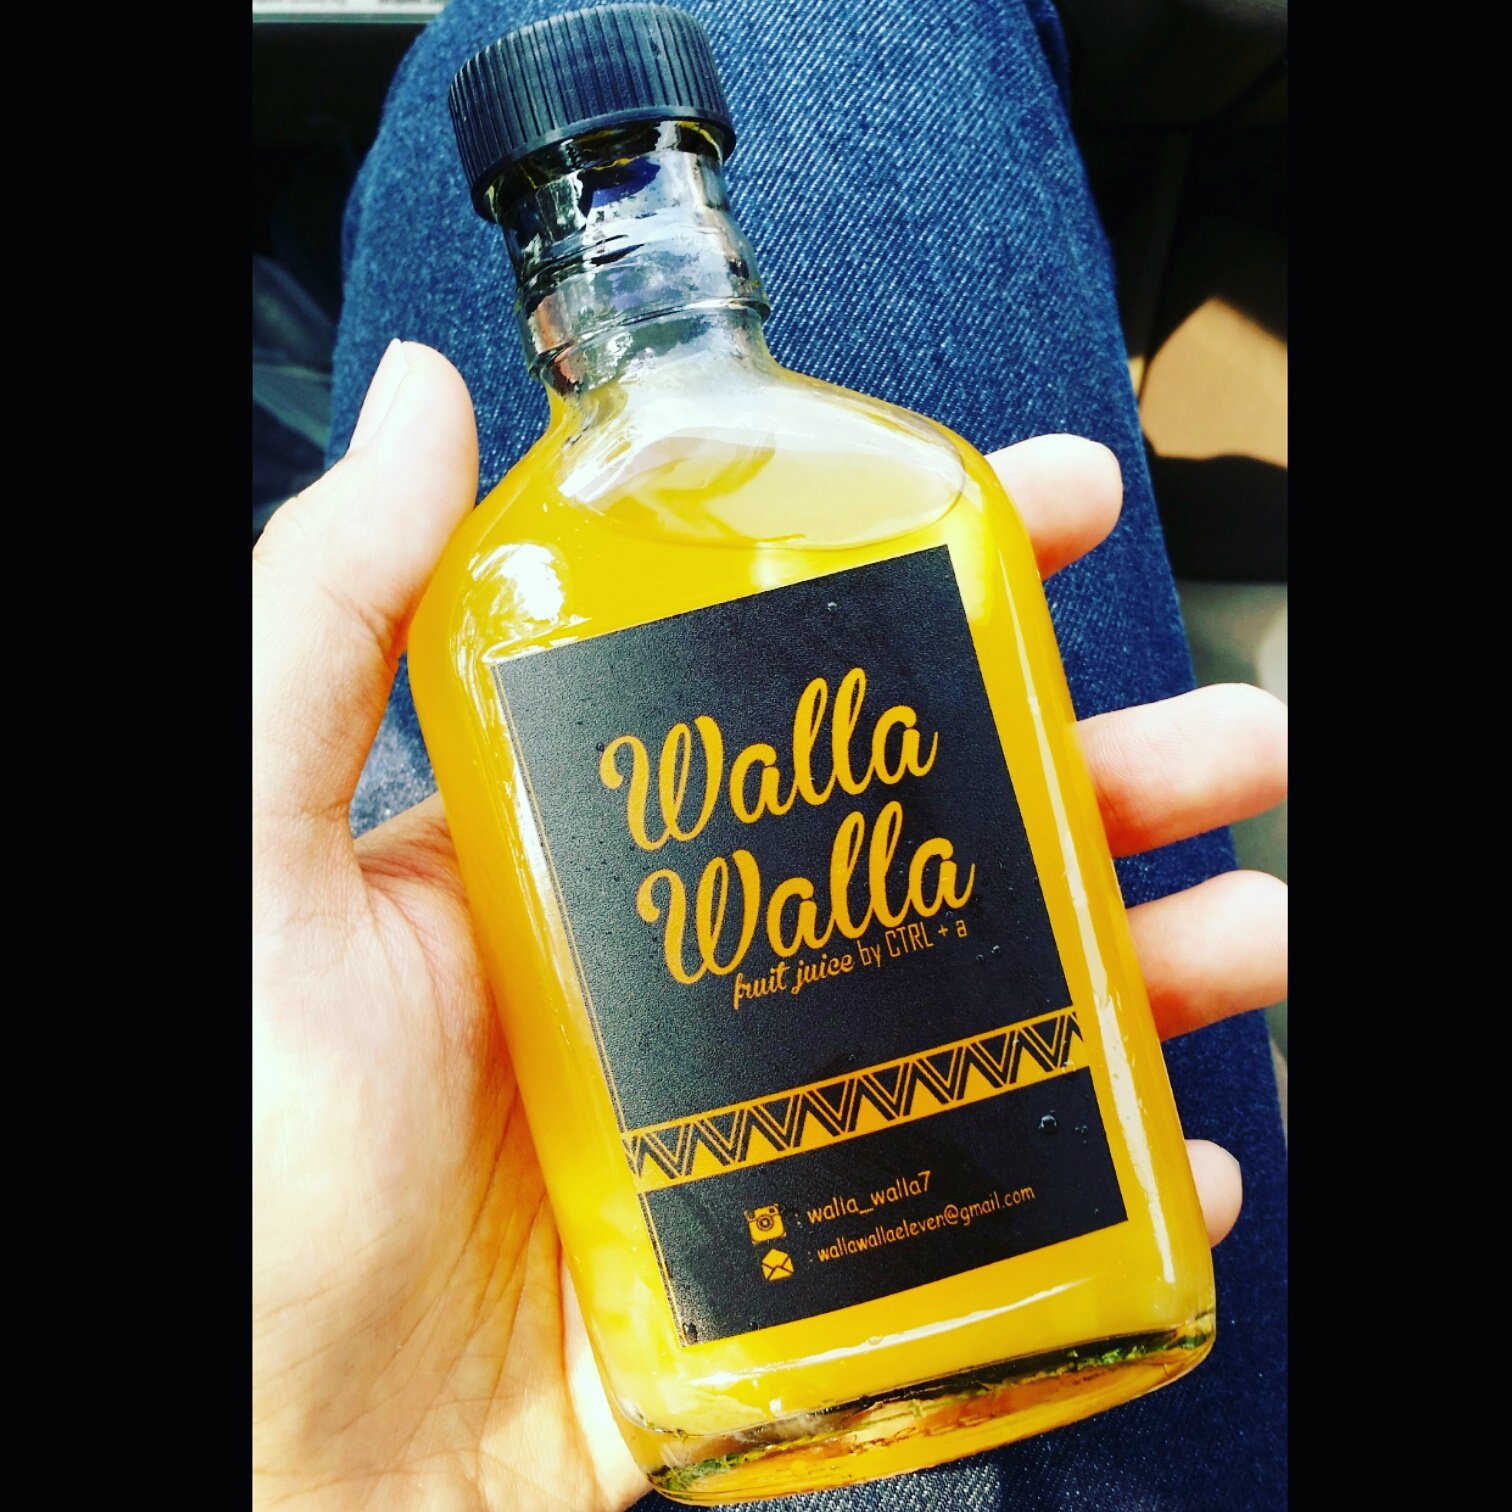 #wallawalla #lemon #fruitjuice by #CTRL+a at #foodmania2016 #petalingjaya #malaysia